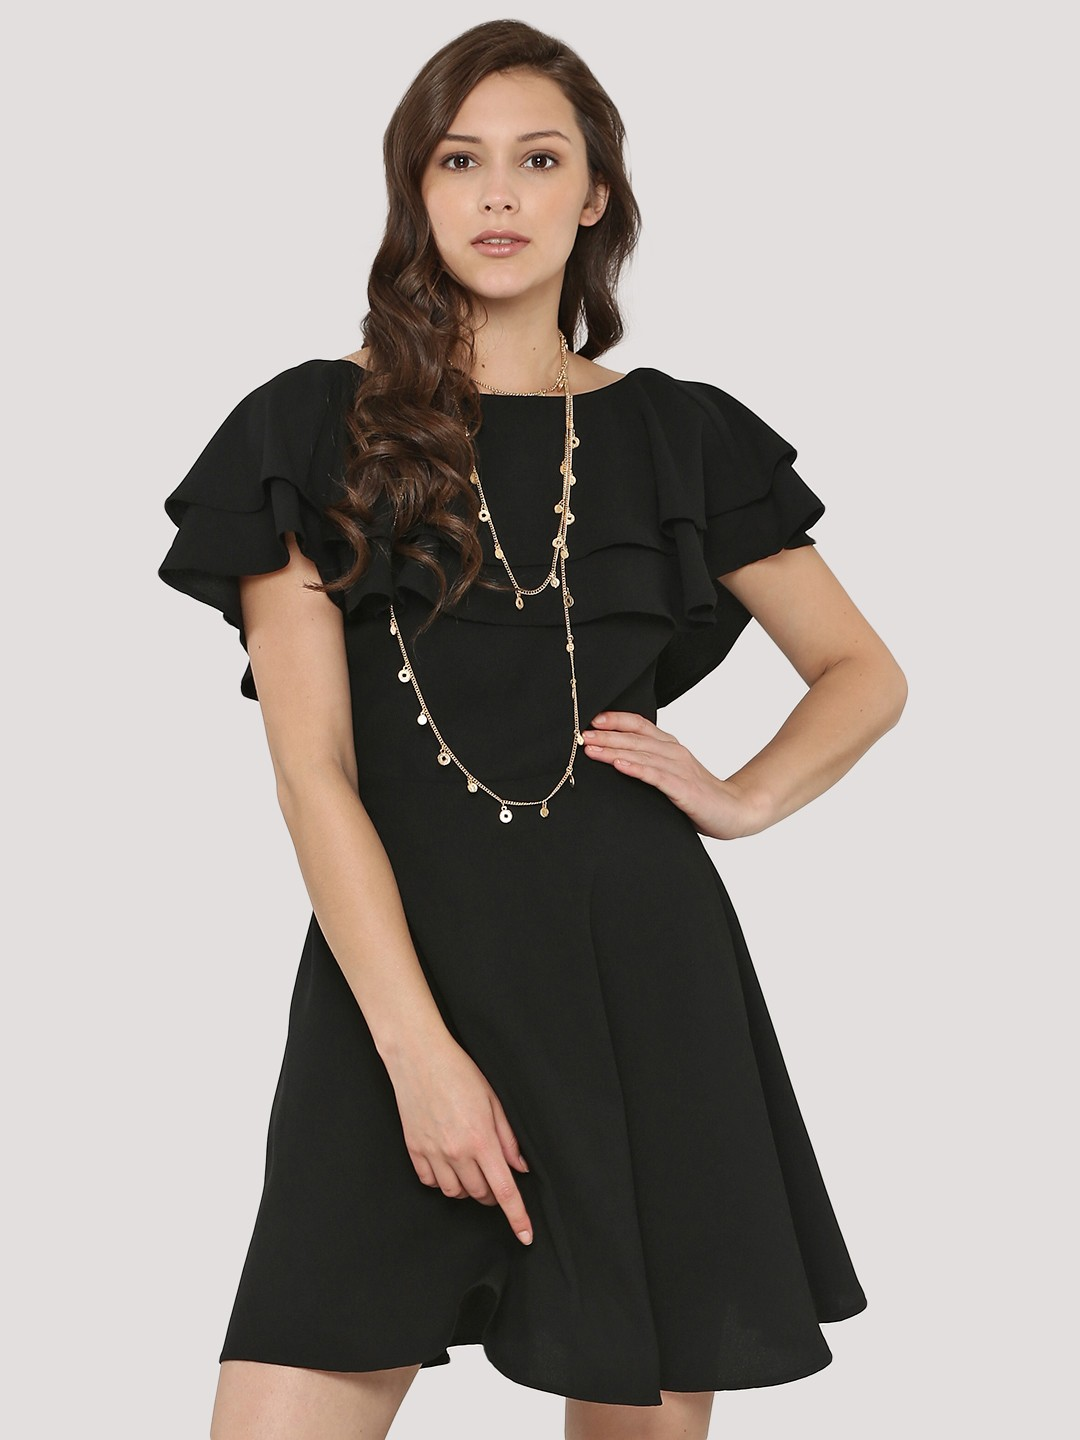 Buy Femella Front Ruffle Top For Women: Buy Femella Black Double Layer Fit And Flare Dress For